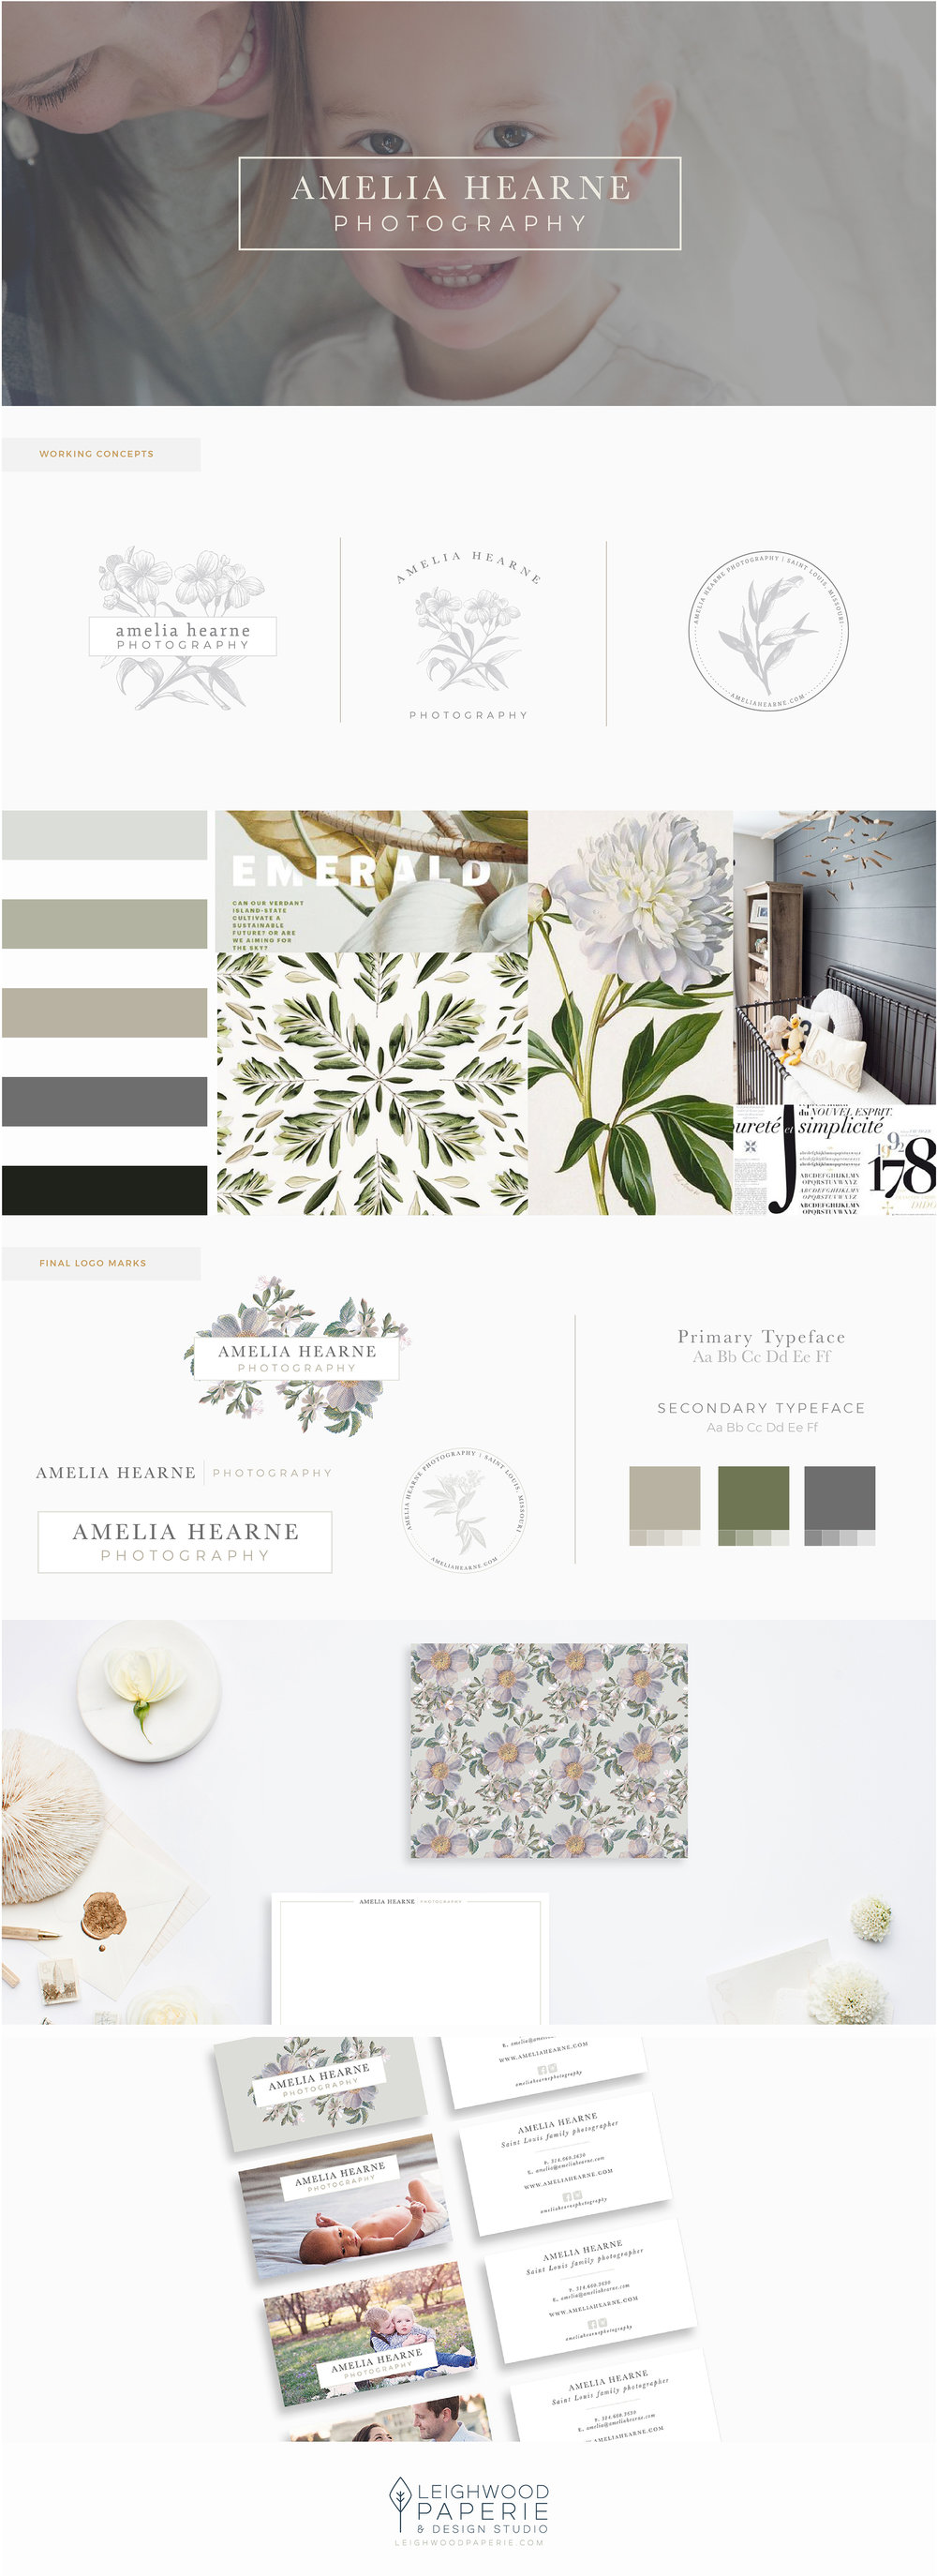 Leighwood Paperie | Branding Porfolio | Amelia Hearne Photography